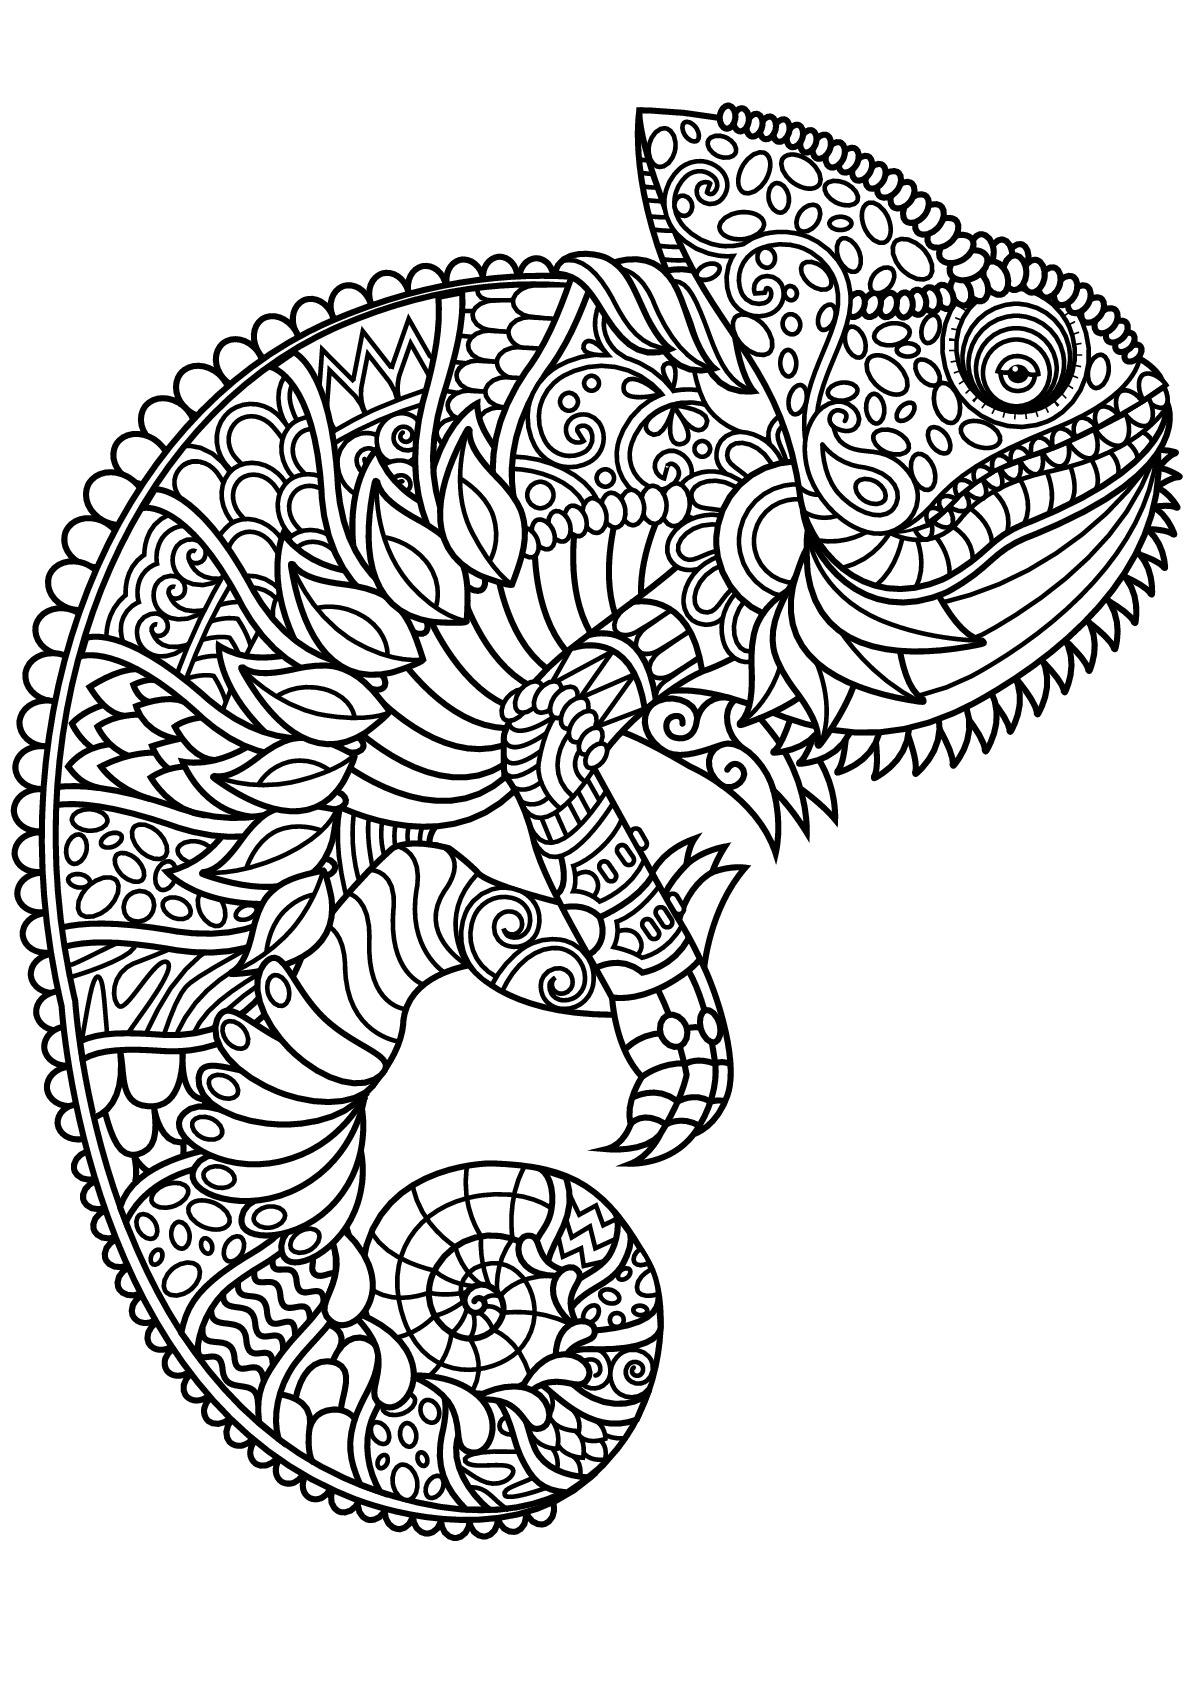 Chameleon Coloring Page Free Book Chameleon Chameleons Lizards Adult Coloring Pages